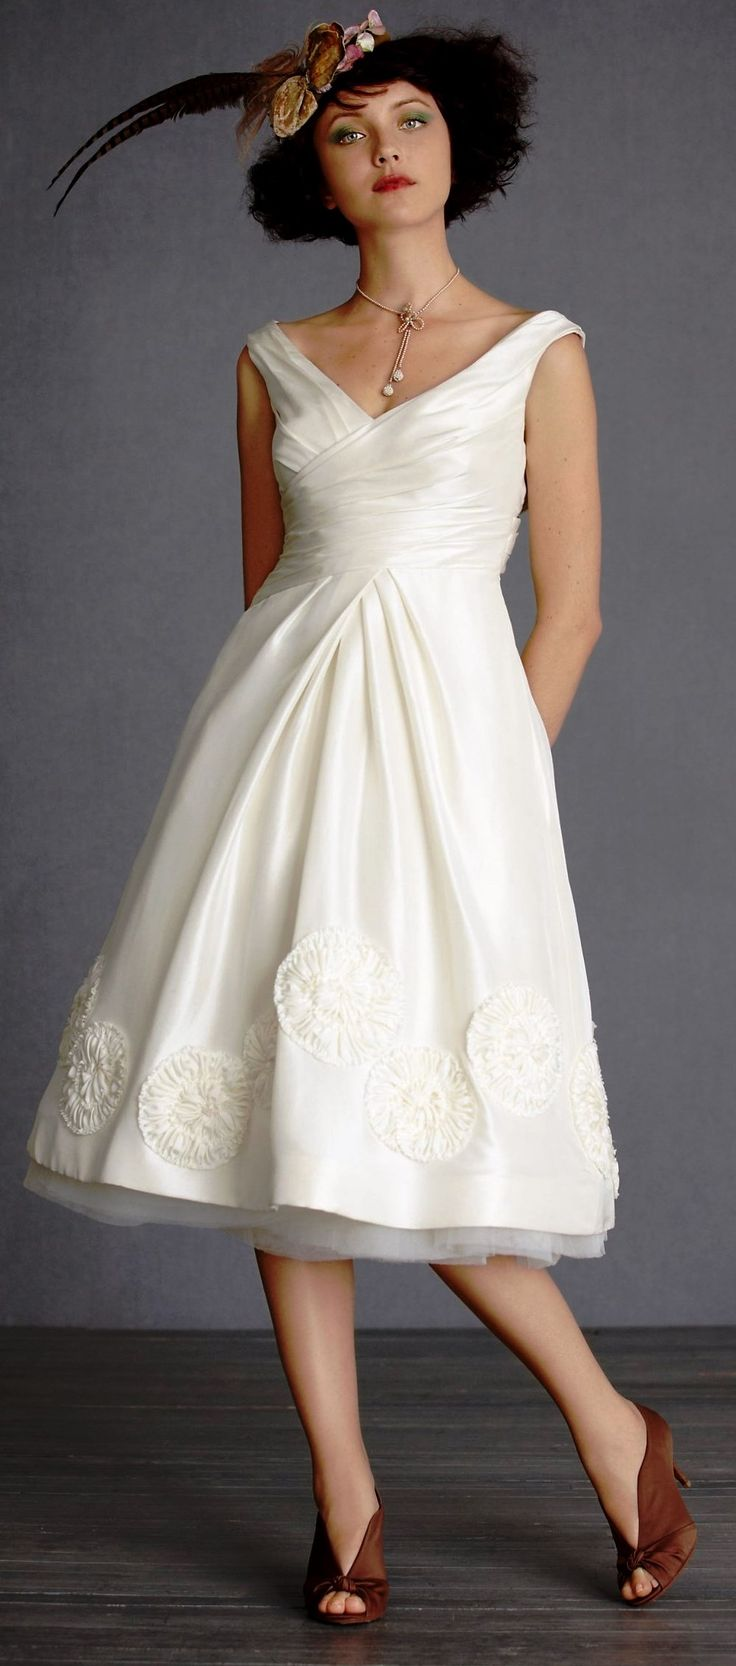 Plus size wedding dresses for older brides l300 for Older brides wedding dresses